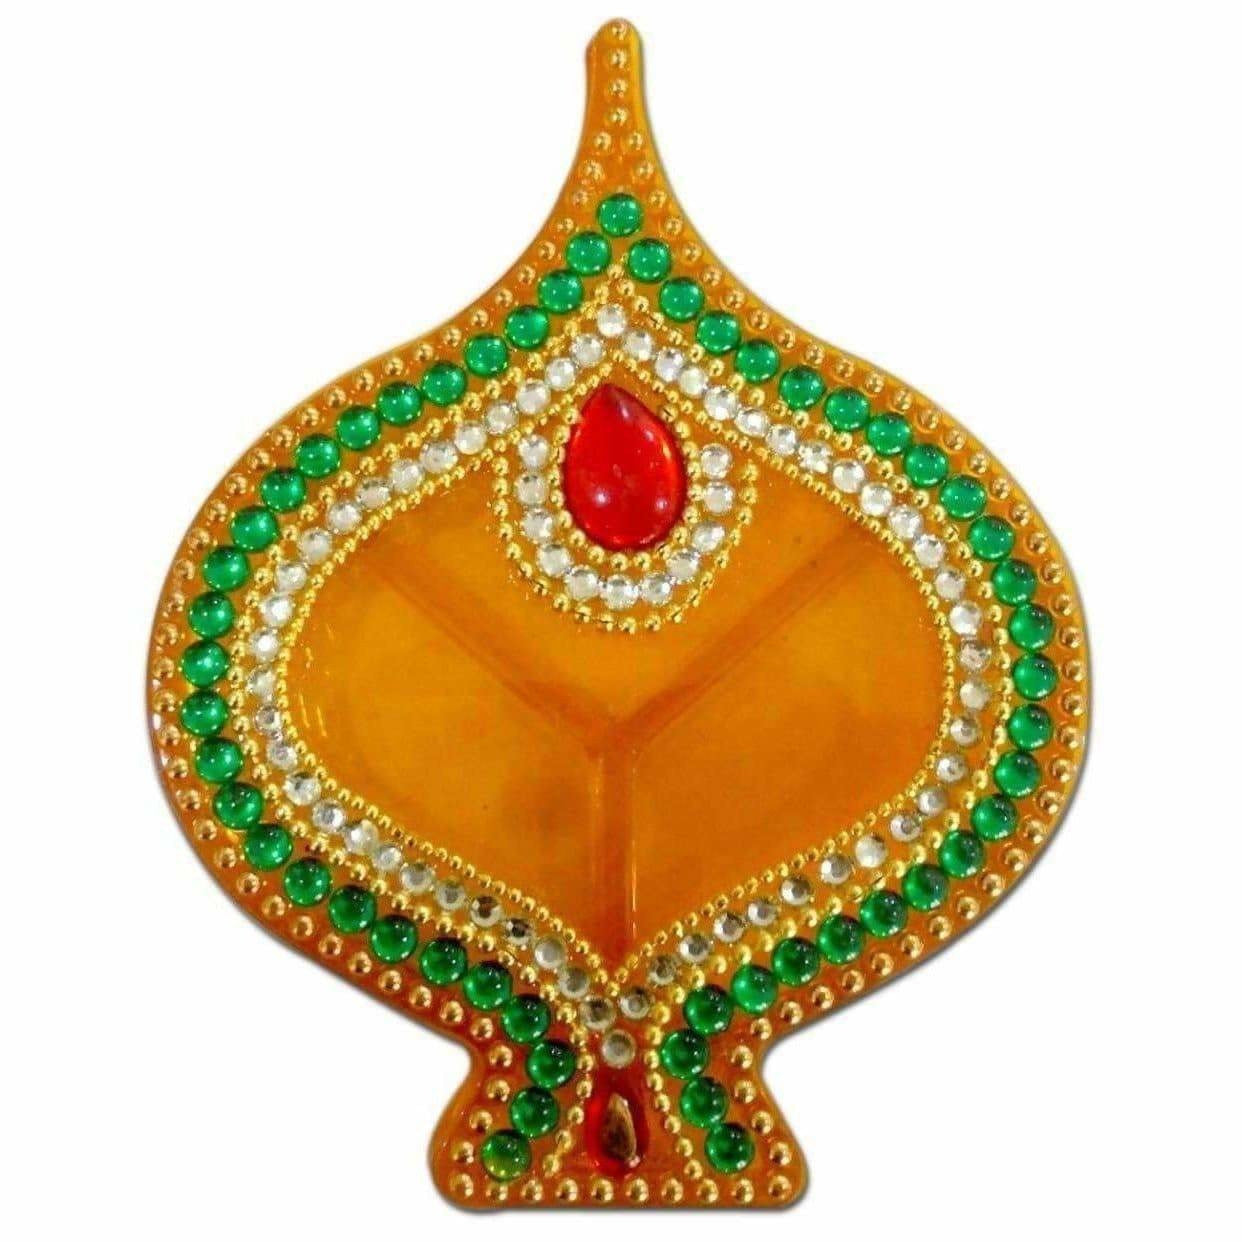 Fire Lamp Design Kumkum Box - 1 Piece